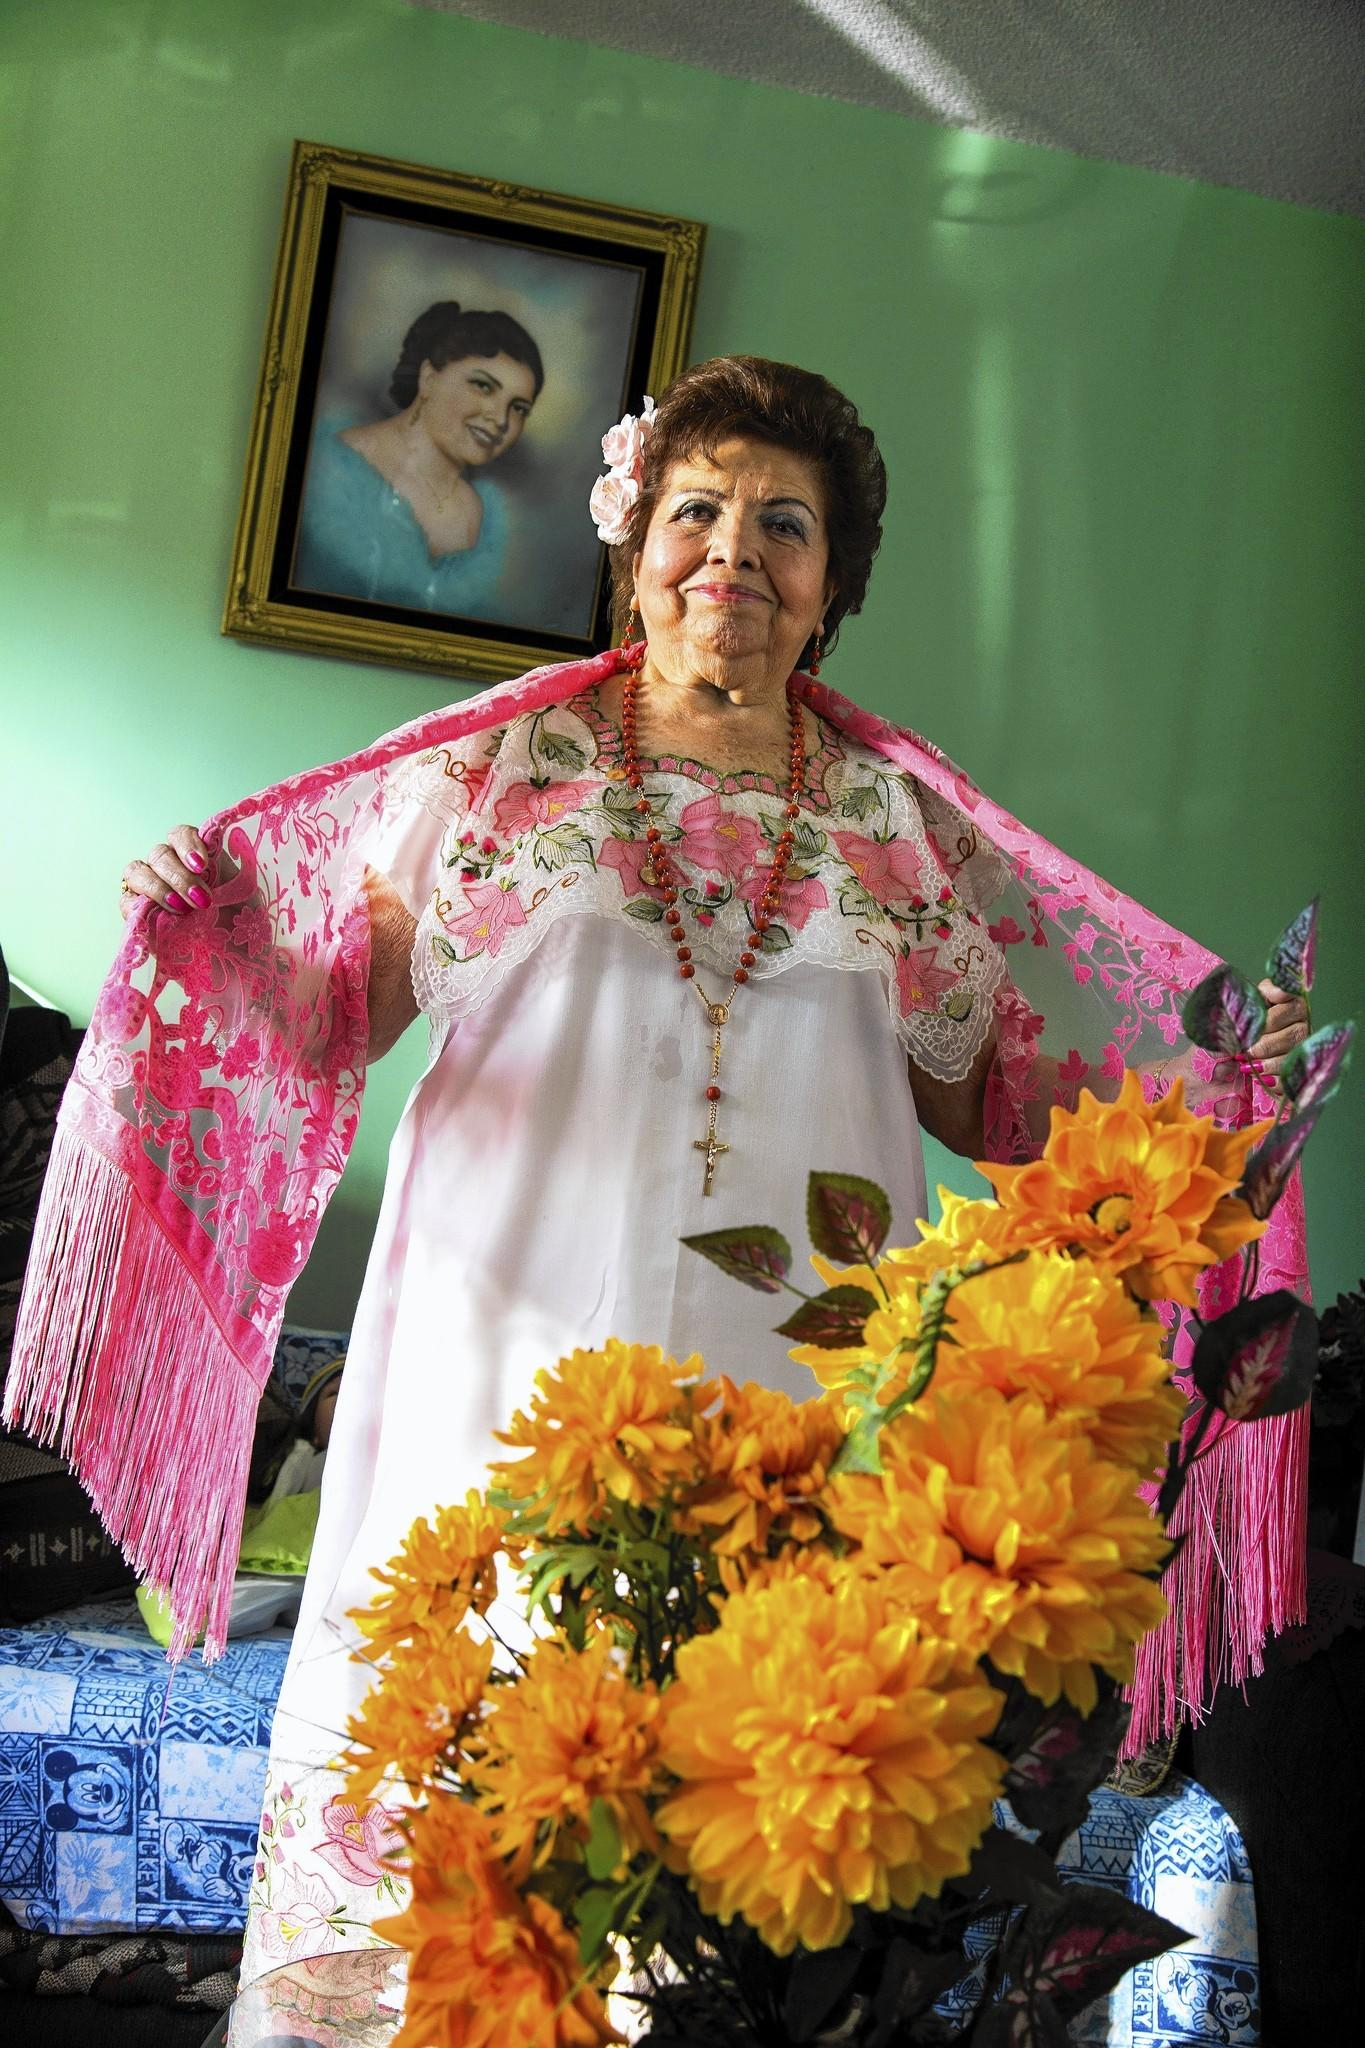 Francis Angulo, 83, spent 12 years performing with an all-female mariachi group formed in 1948. She is featured in an exhibit on female mariachis at the San Gabriel Mission Playhouse.